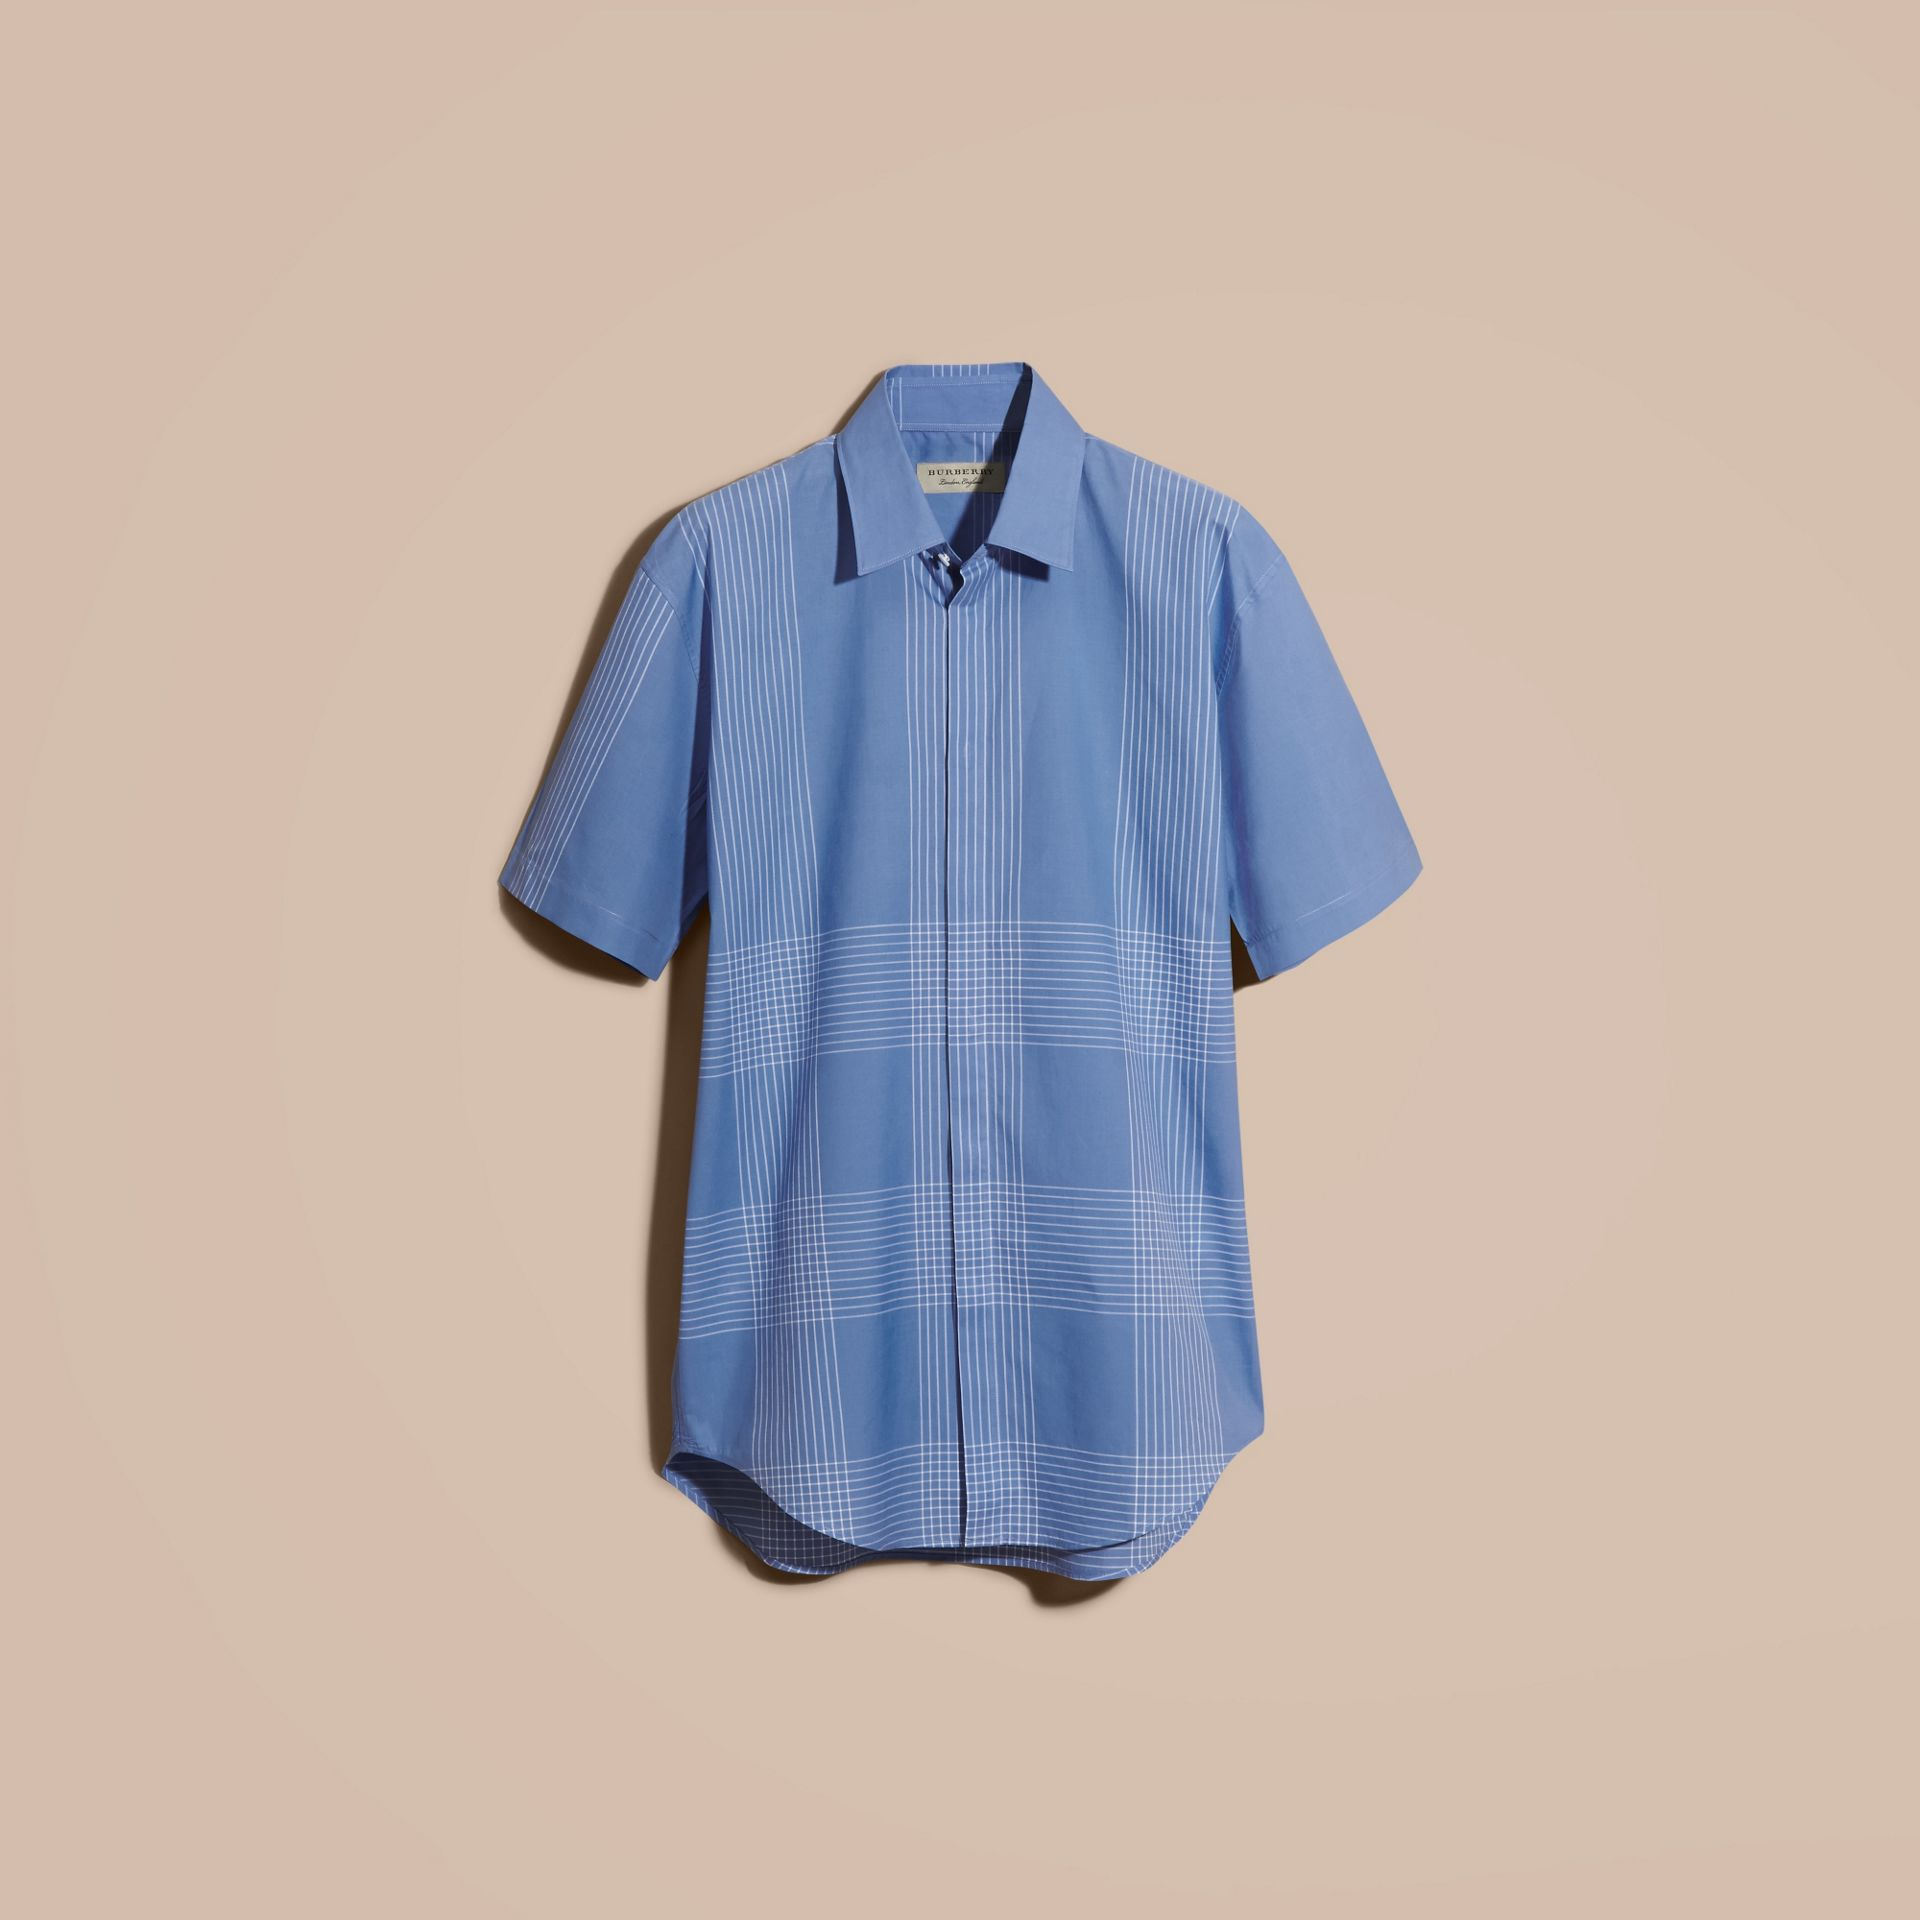 Bright hydrangea blue Short-sleeved Check Cotton Shirt Bright Hydrangea Blue - gallery image 4